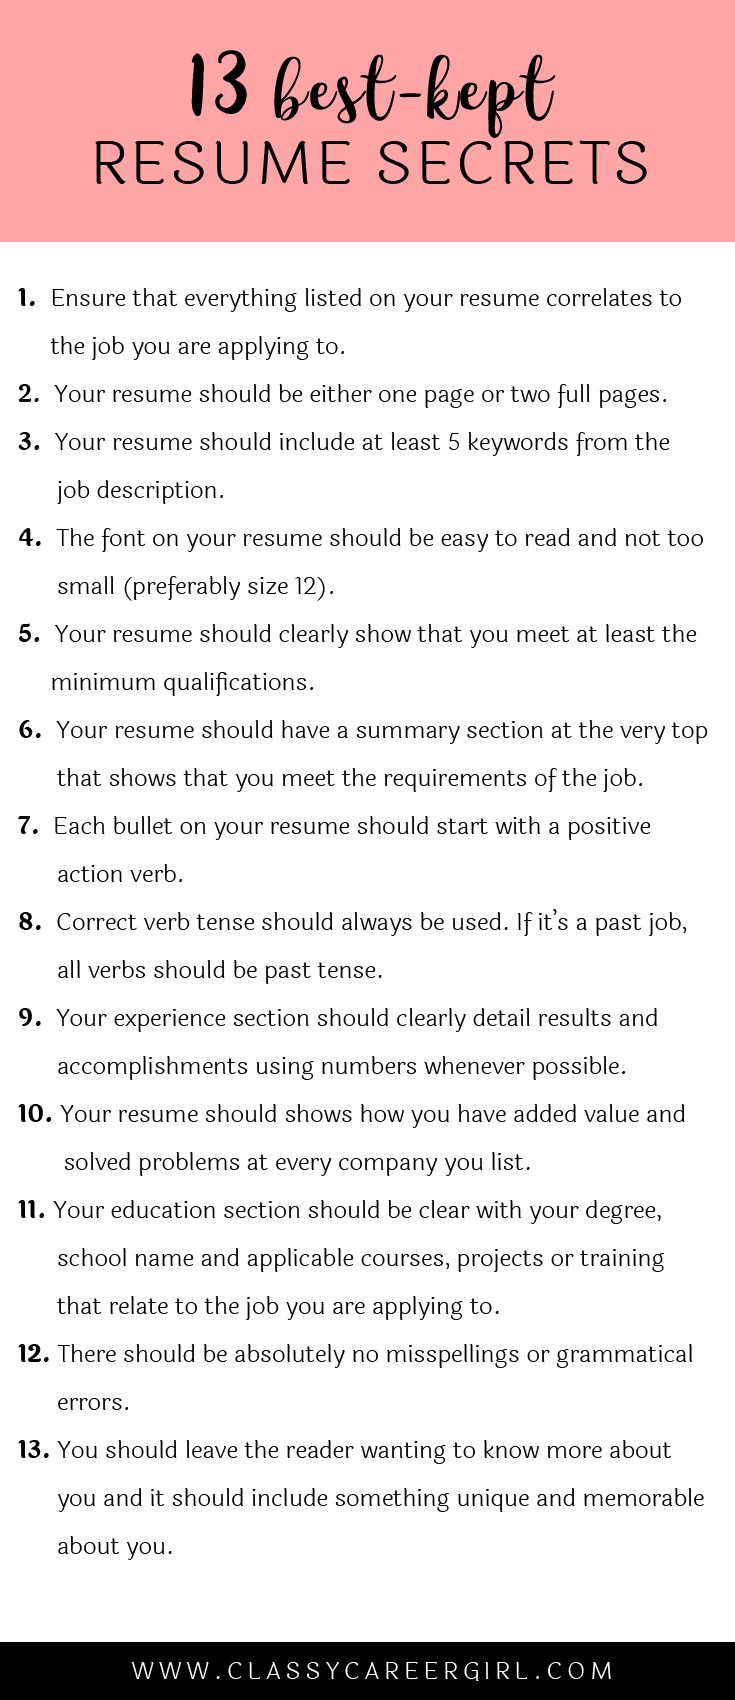 Opposenewapstandardsus  Unique  Ideas About Resume On Pinterest  Cv Format Resume Cv And  With Fair Some Hiring Managers Will Toss Your Resume Out If You Dont Know These  With Extraordinary Resume Pdf Template Also Resume Up In Addition Two Types Of Resumes And Free Resume Sites As Well As Resume Work Experience Order Additionally Picture Of A Resume From Pinterestcom With Opposenewapstandardsus  Fair  Ideas About Resume On Pinterest  Cv Format Resume Cv And  With Extraordinary Some Hiring Managers Will Toss Your Resume Out If You Dont Know These  And Unique Resume Pdf Template Also Resume Up In Addition Two Types Of Resumes From Pinterestcom